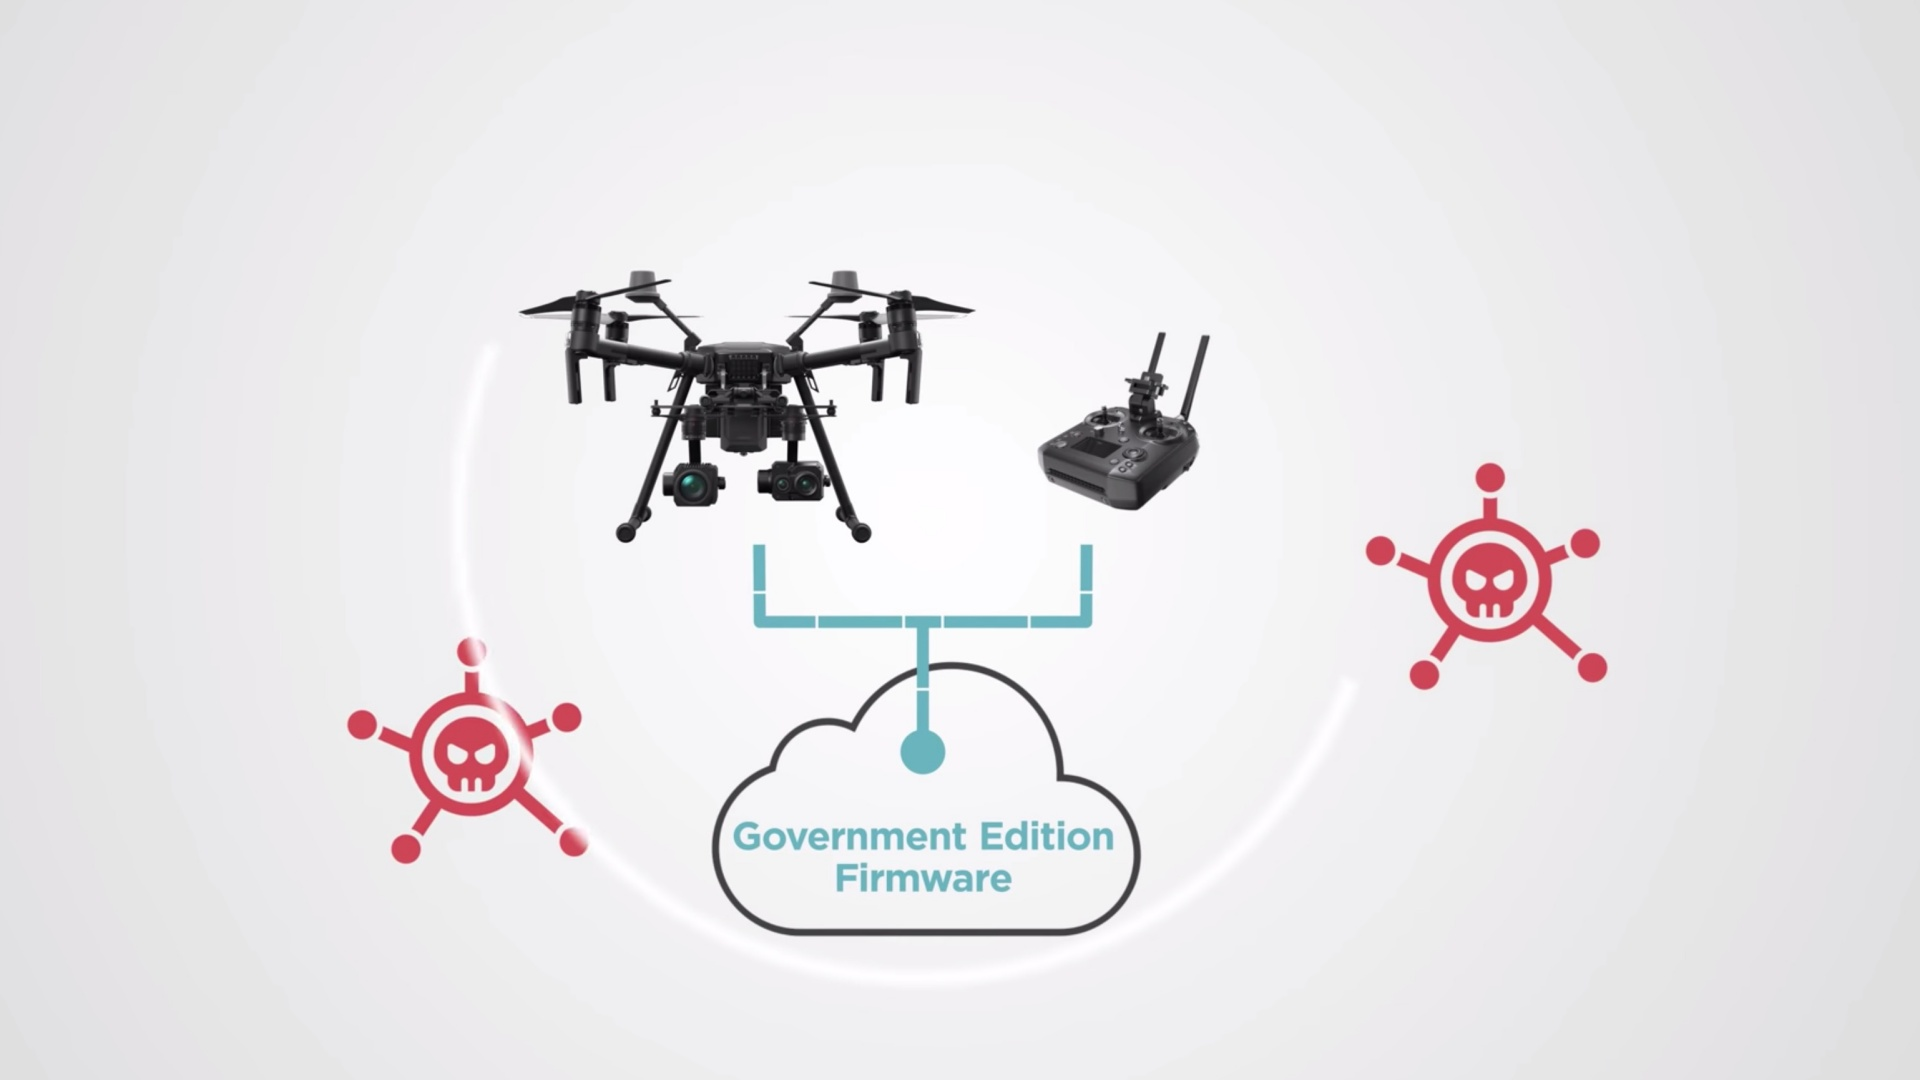 DJI Government Edition